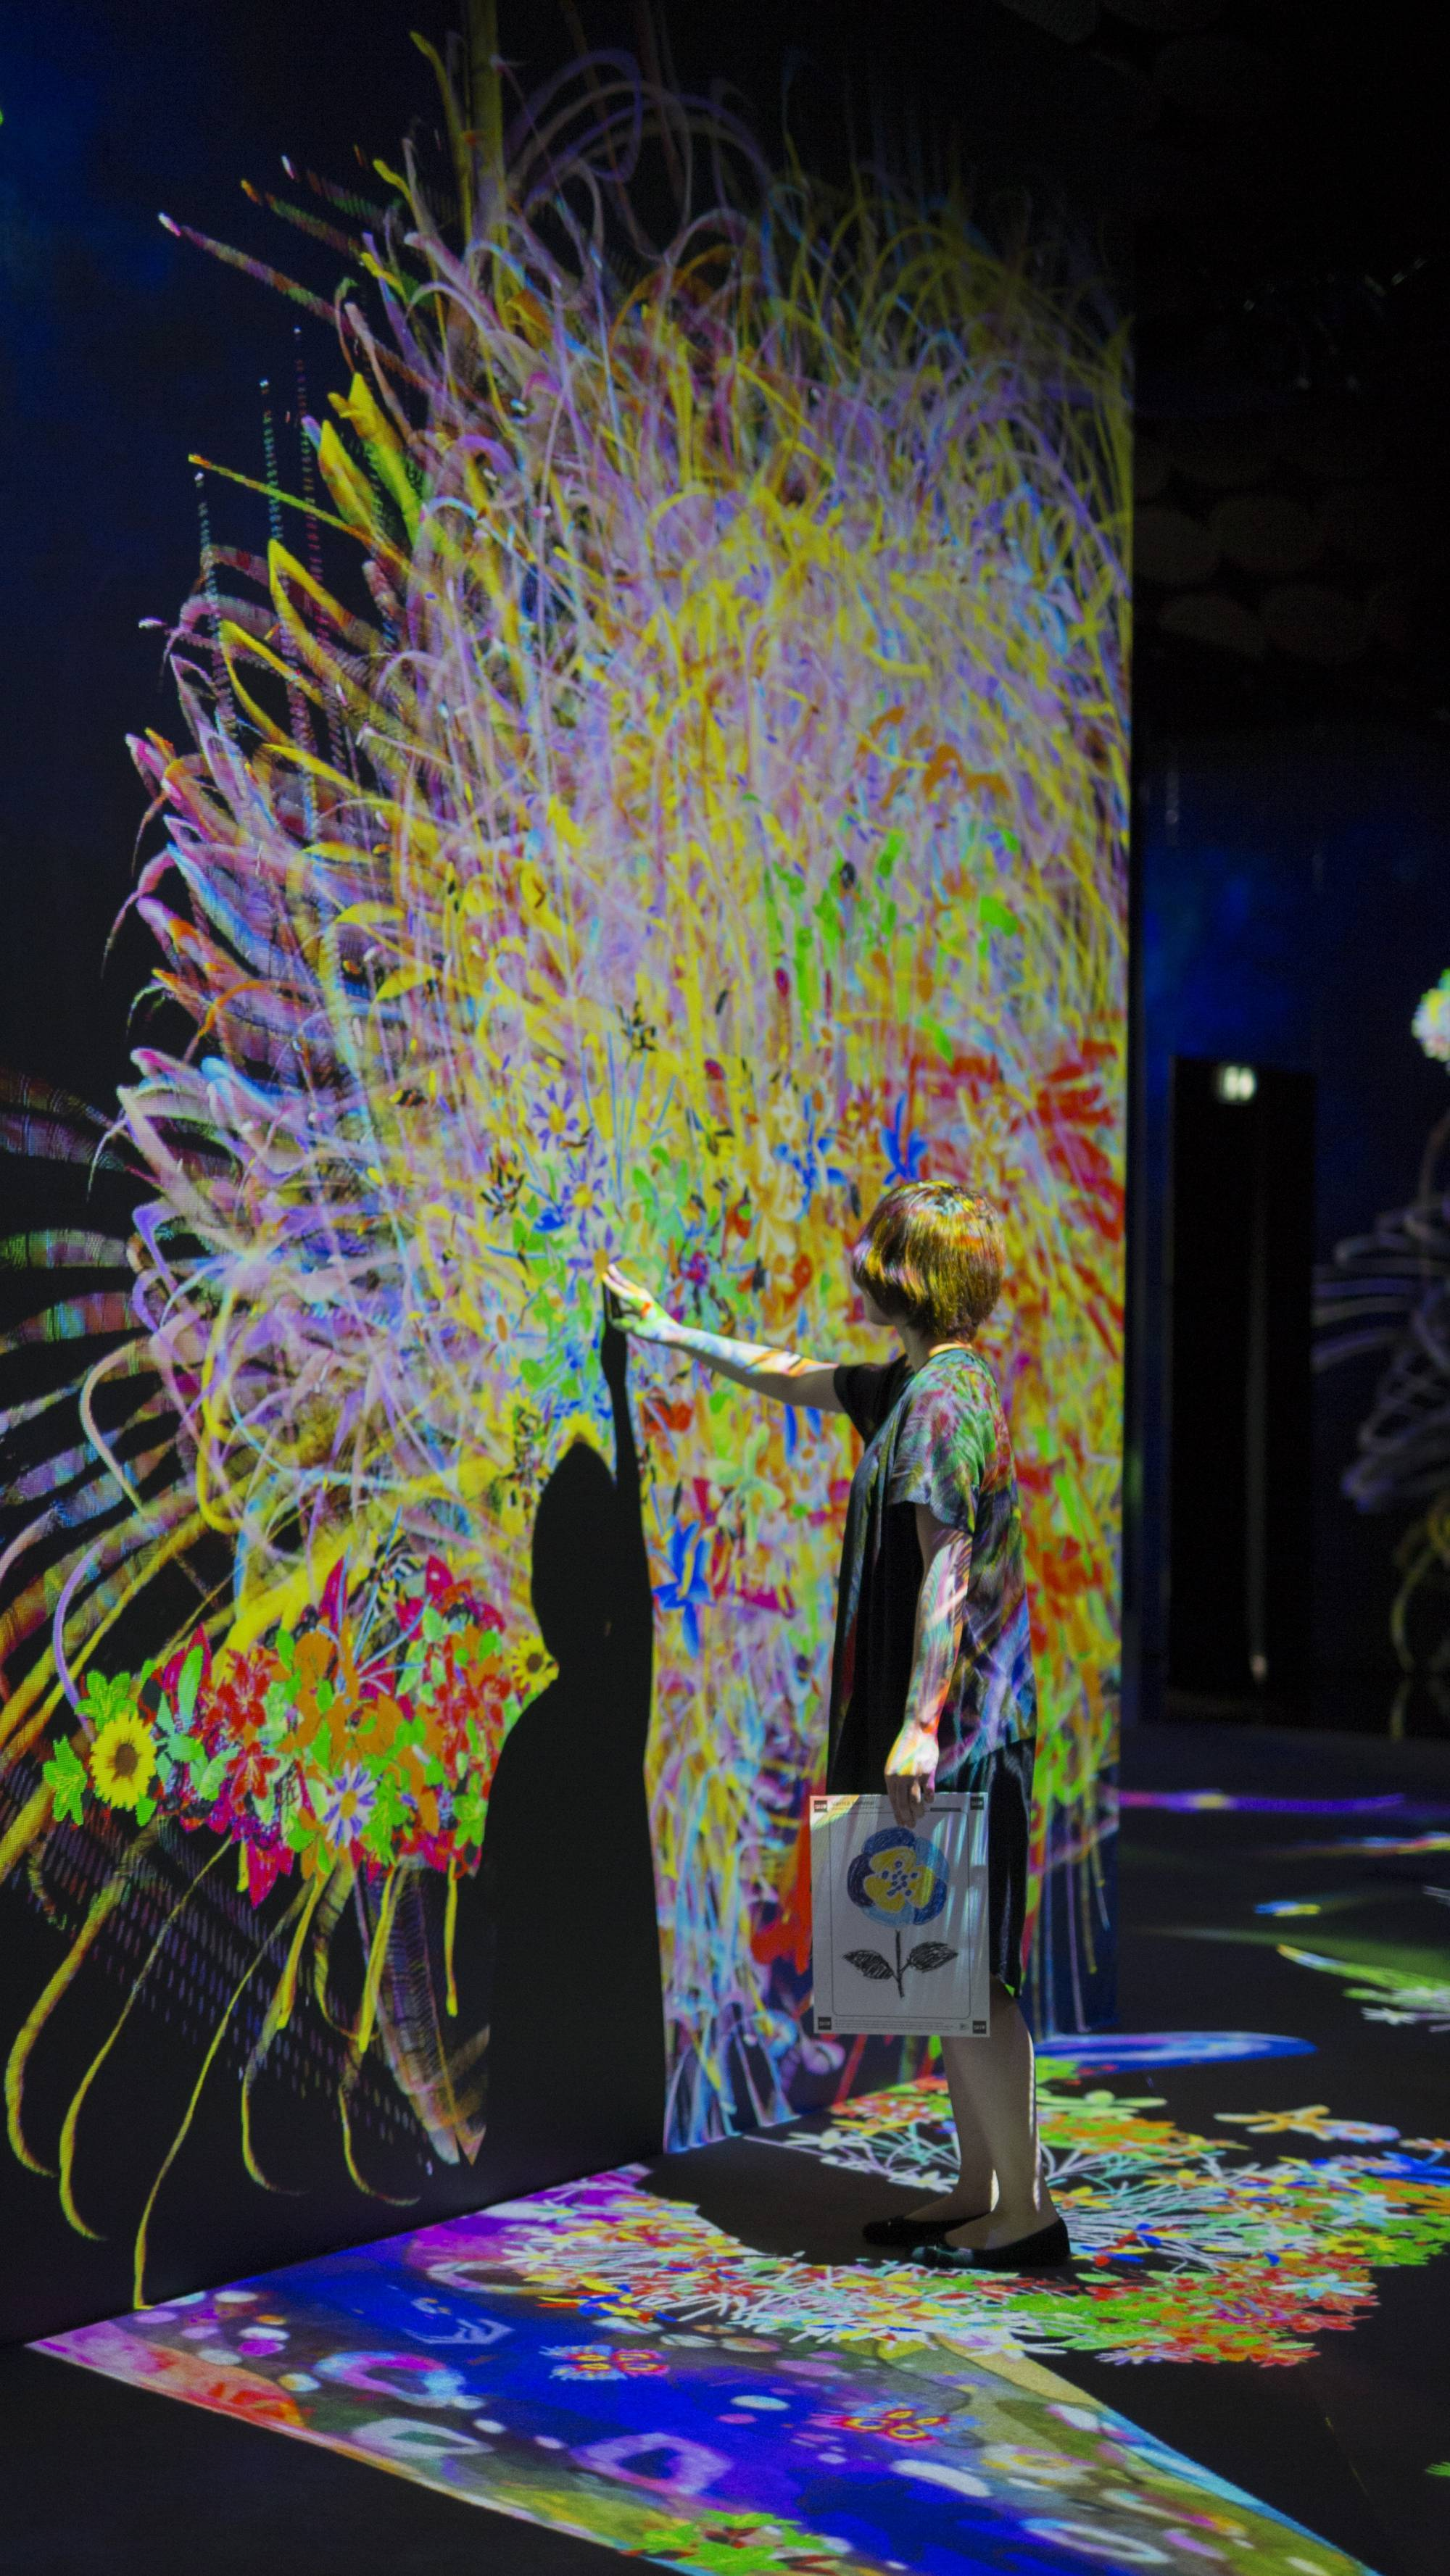 [Artwork selection] Teamlab: Graffiti Nature – Lost, Immersed and Reborn